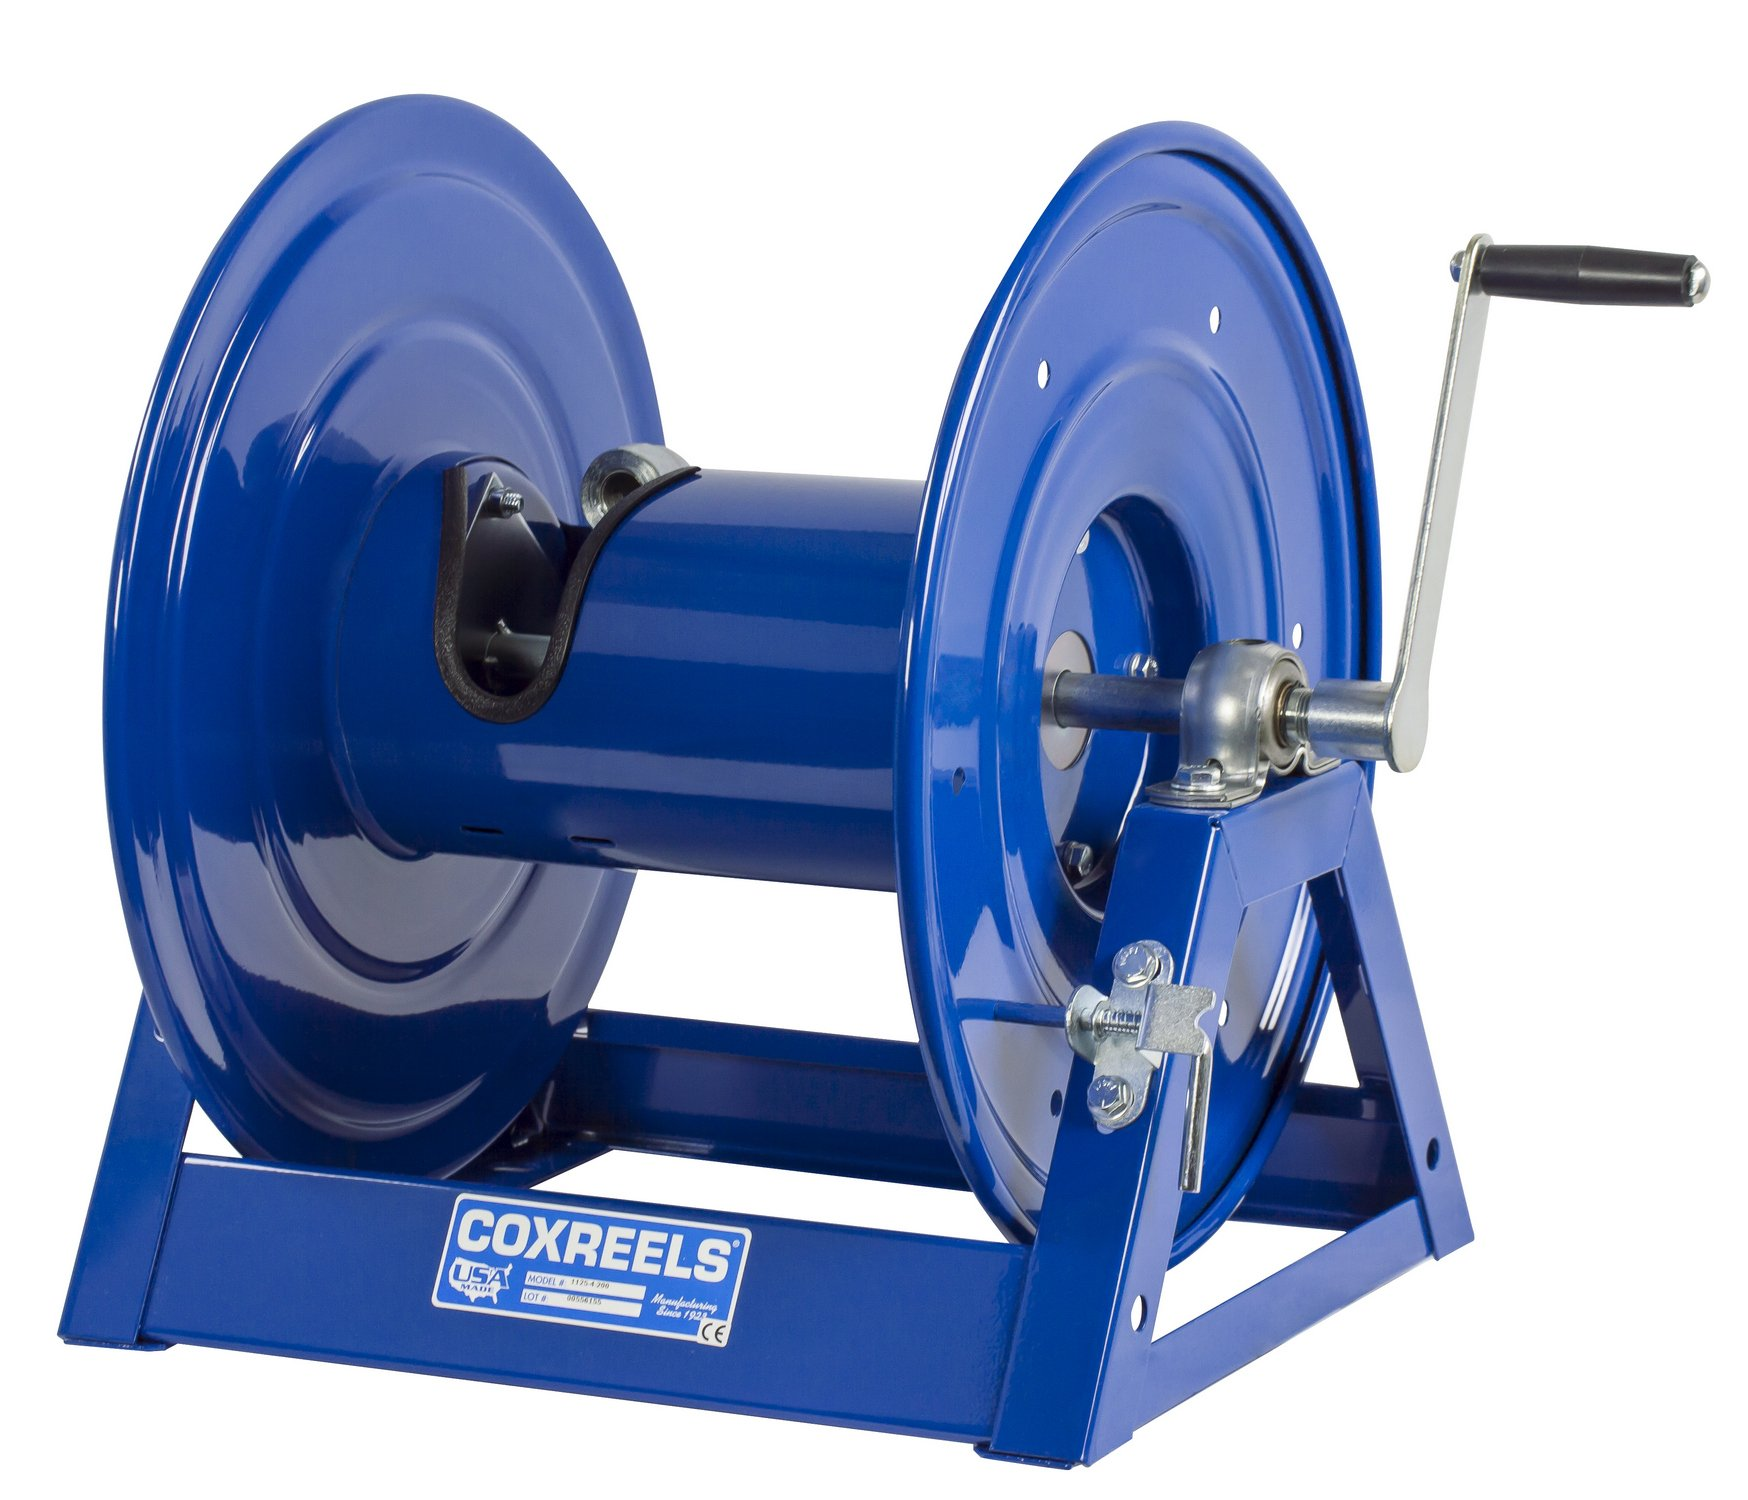 Coxreels 1125-4-100 Steel Hand Crank Hose Reel, 1/2'' Hose I.D., 100' Hose Capacity, 3,000 PSI, without Hose, Made in USA by Coxreels (Image #6)